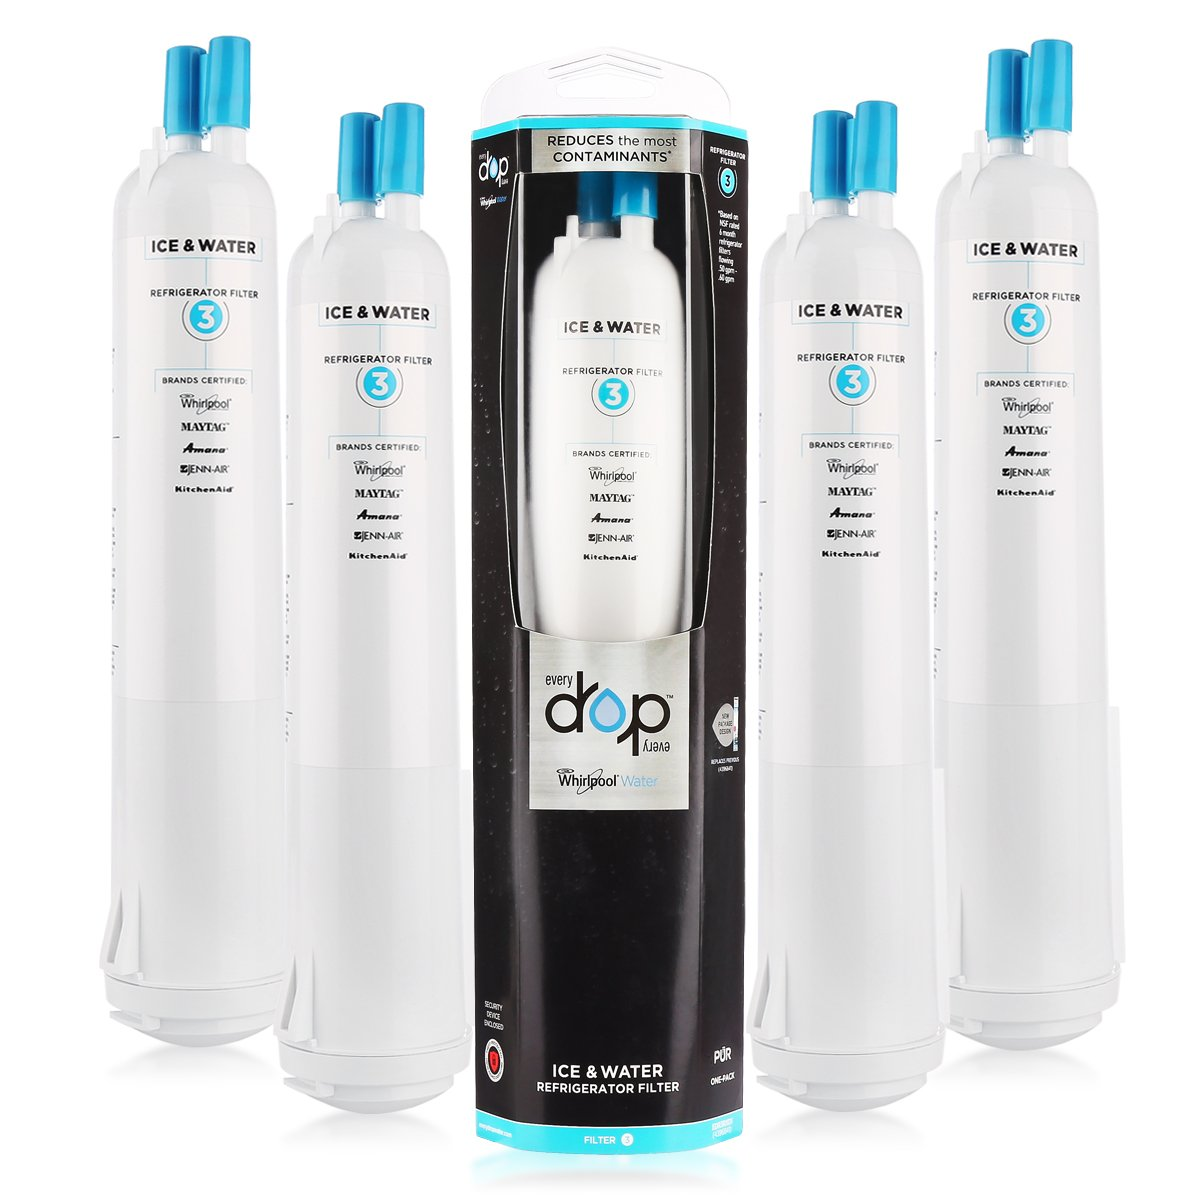 (4 Pack)Refrigerator Water Filter Replacement Whirlpool Fliter 3 EDR3RXD1 For EveryDrop 469930 4396841, 4396710 Refrigerator Water Filter